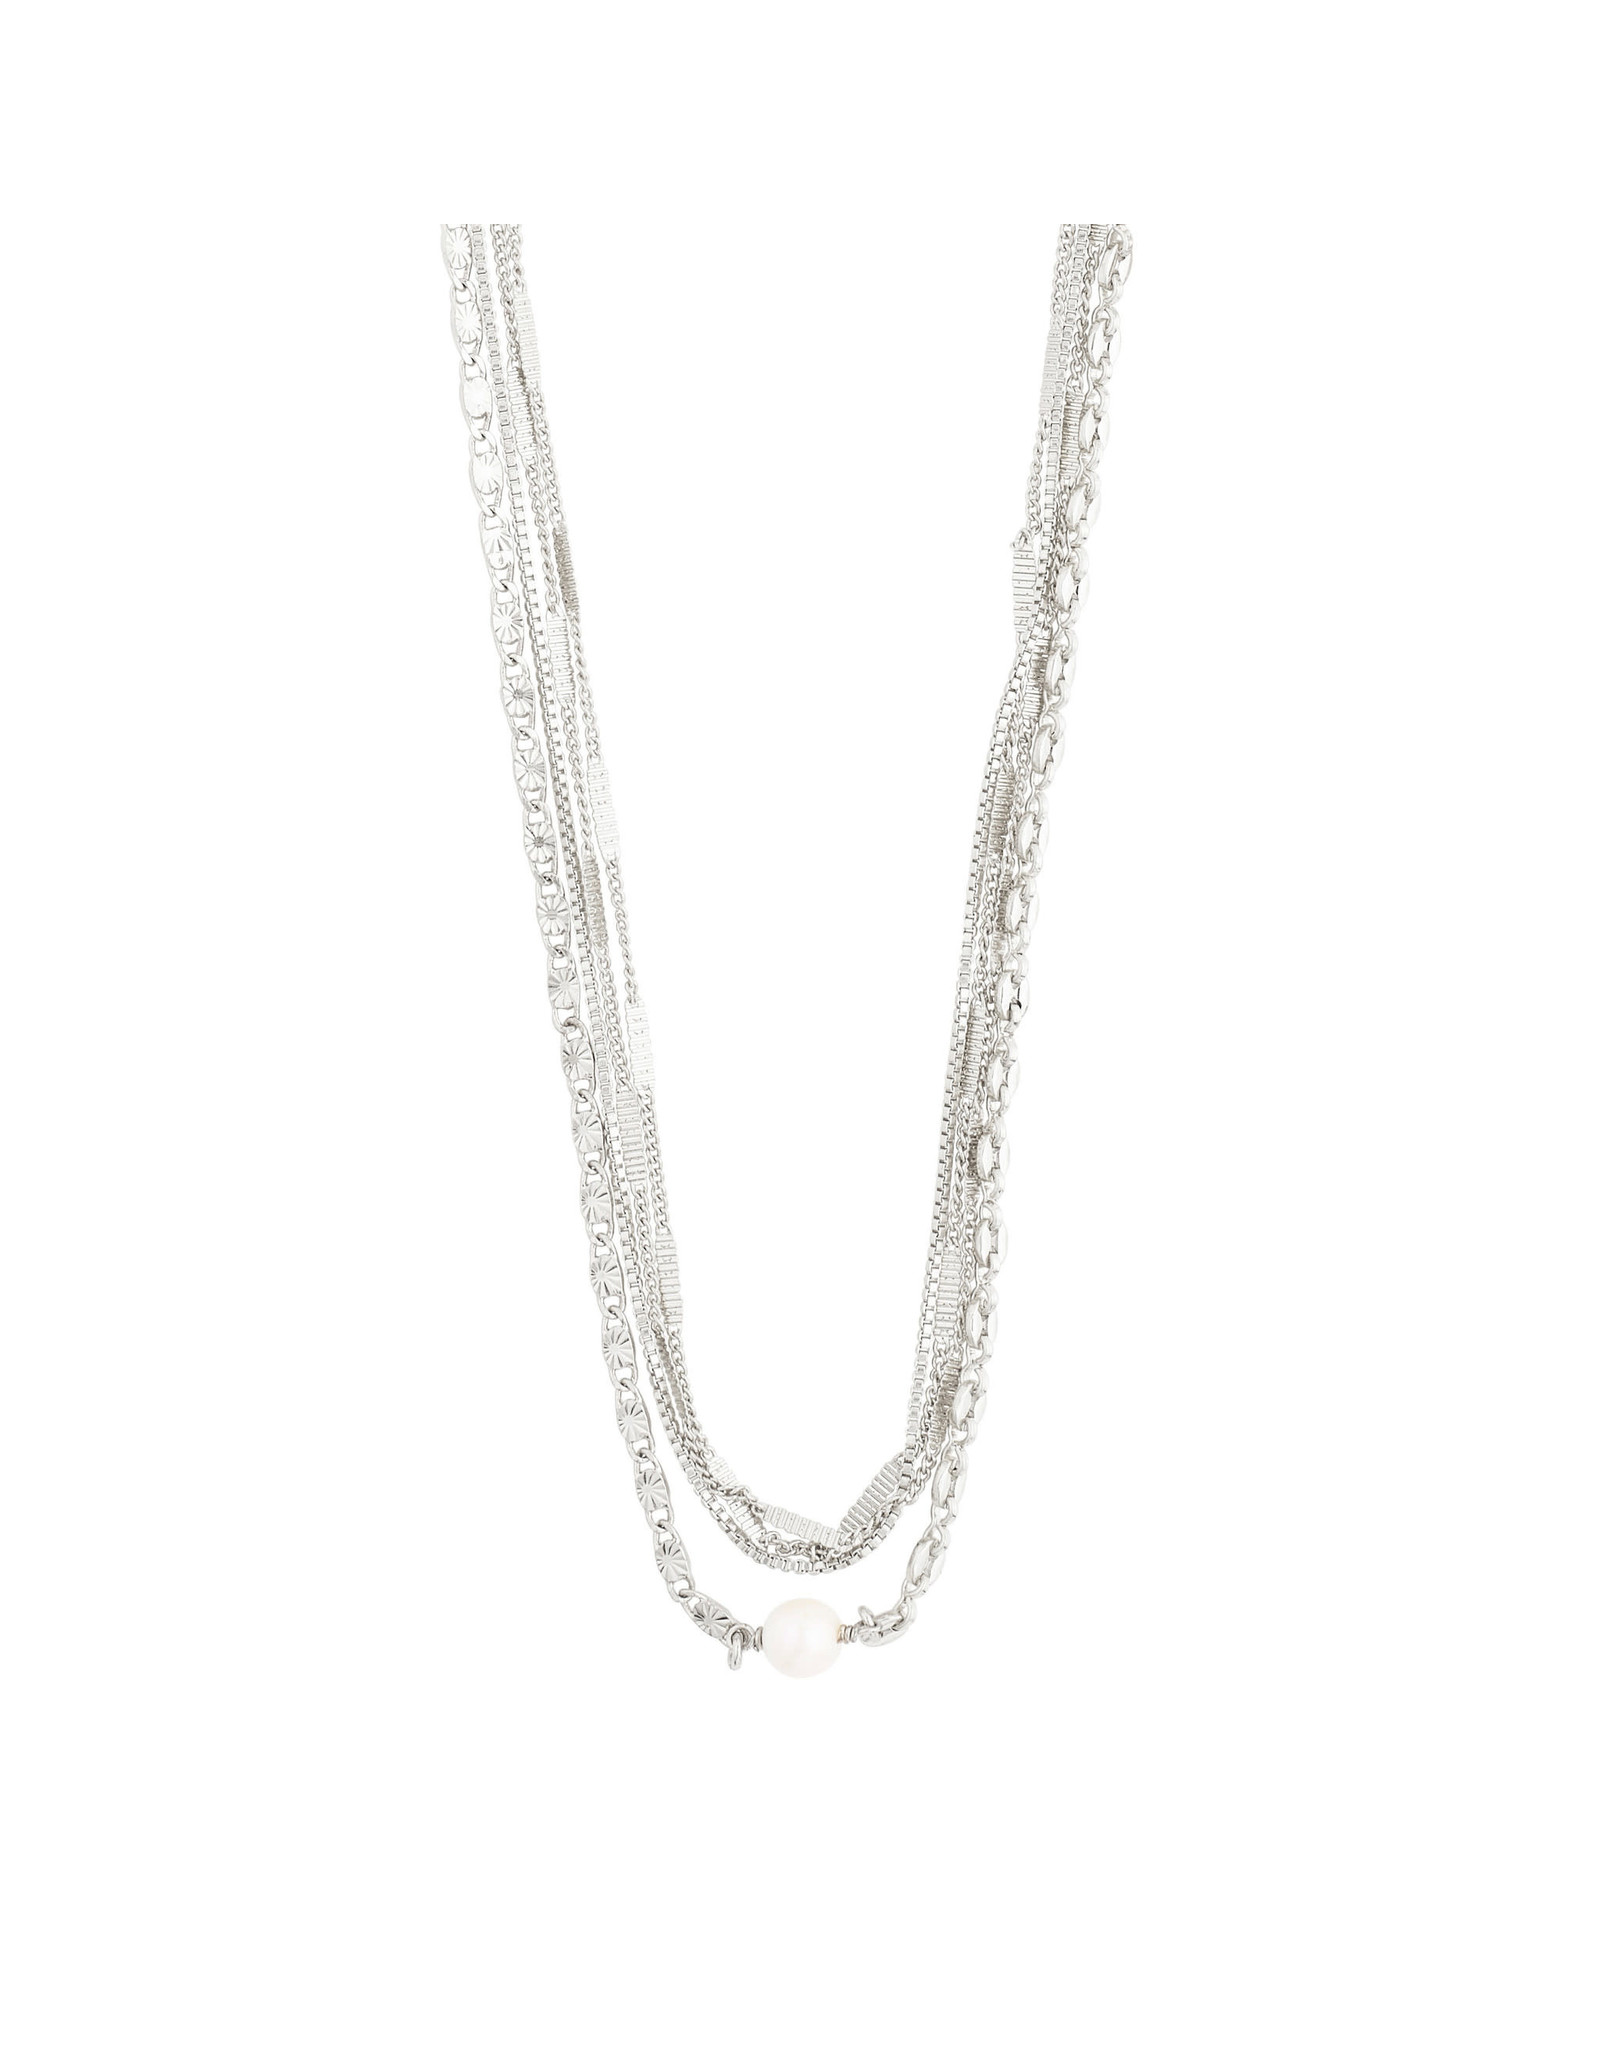 Pilgrim Necklace Katherine Layered 2 In a 1, Silver Plated